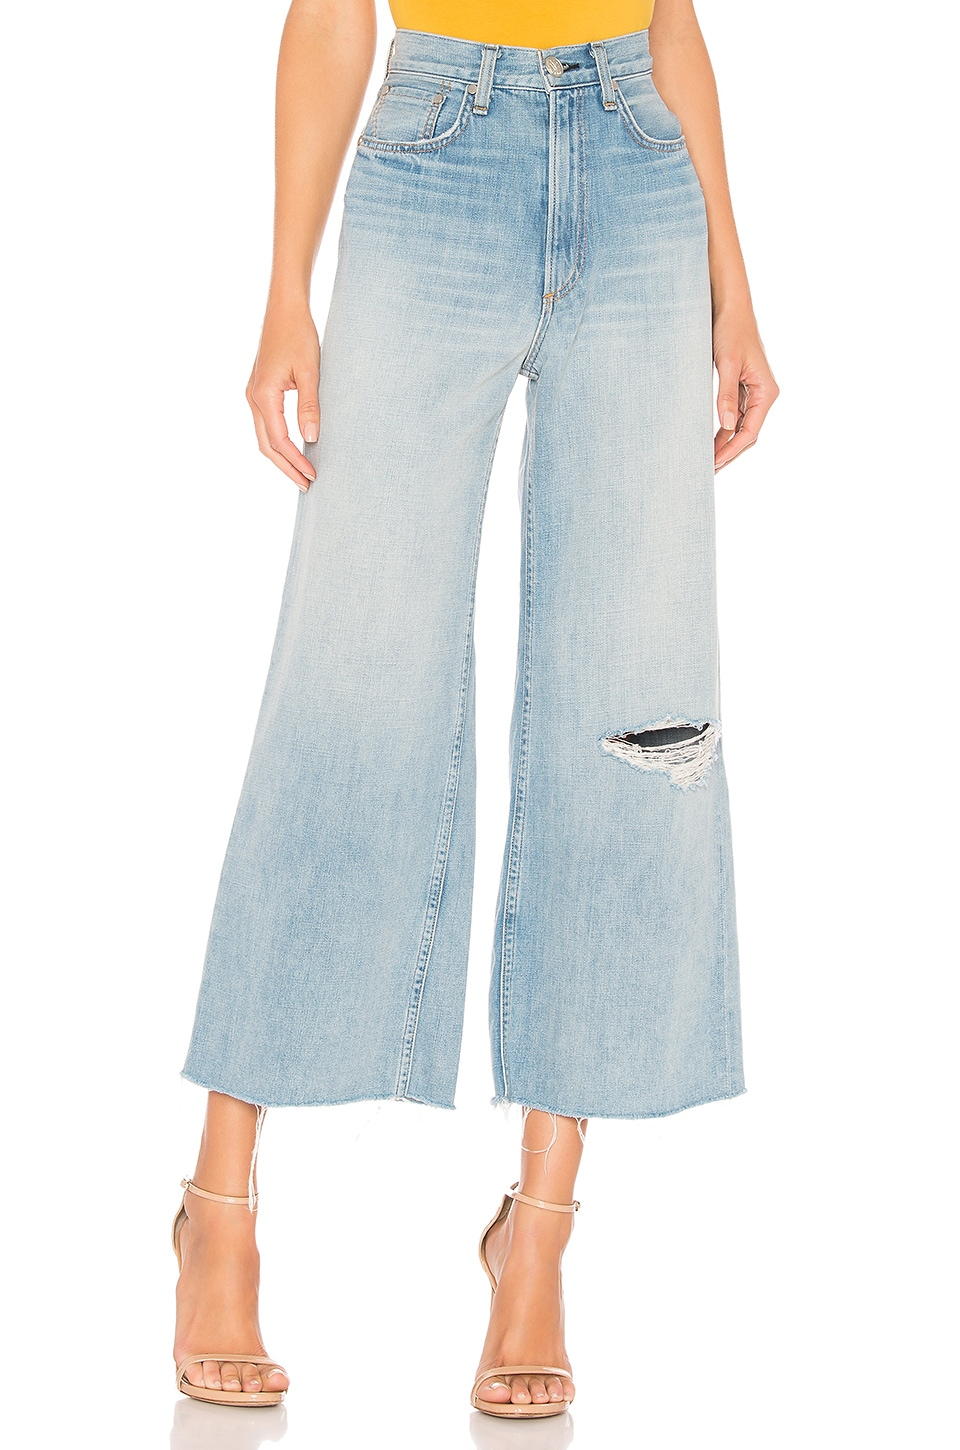 Rag & Bone Ruth Super High Rise Ankle Wide Leg in Frant